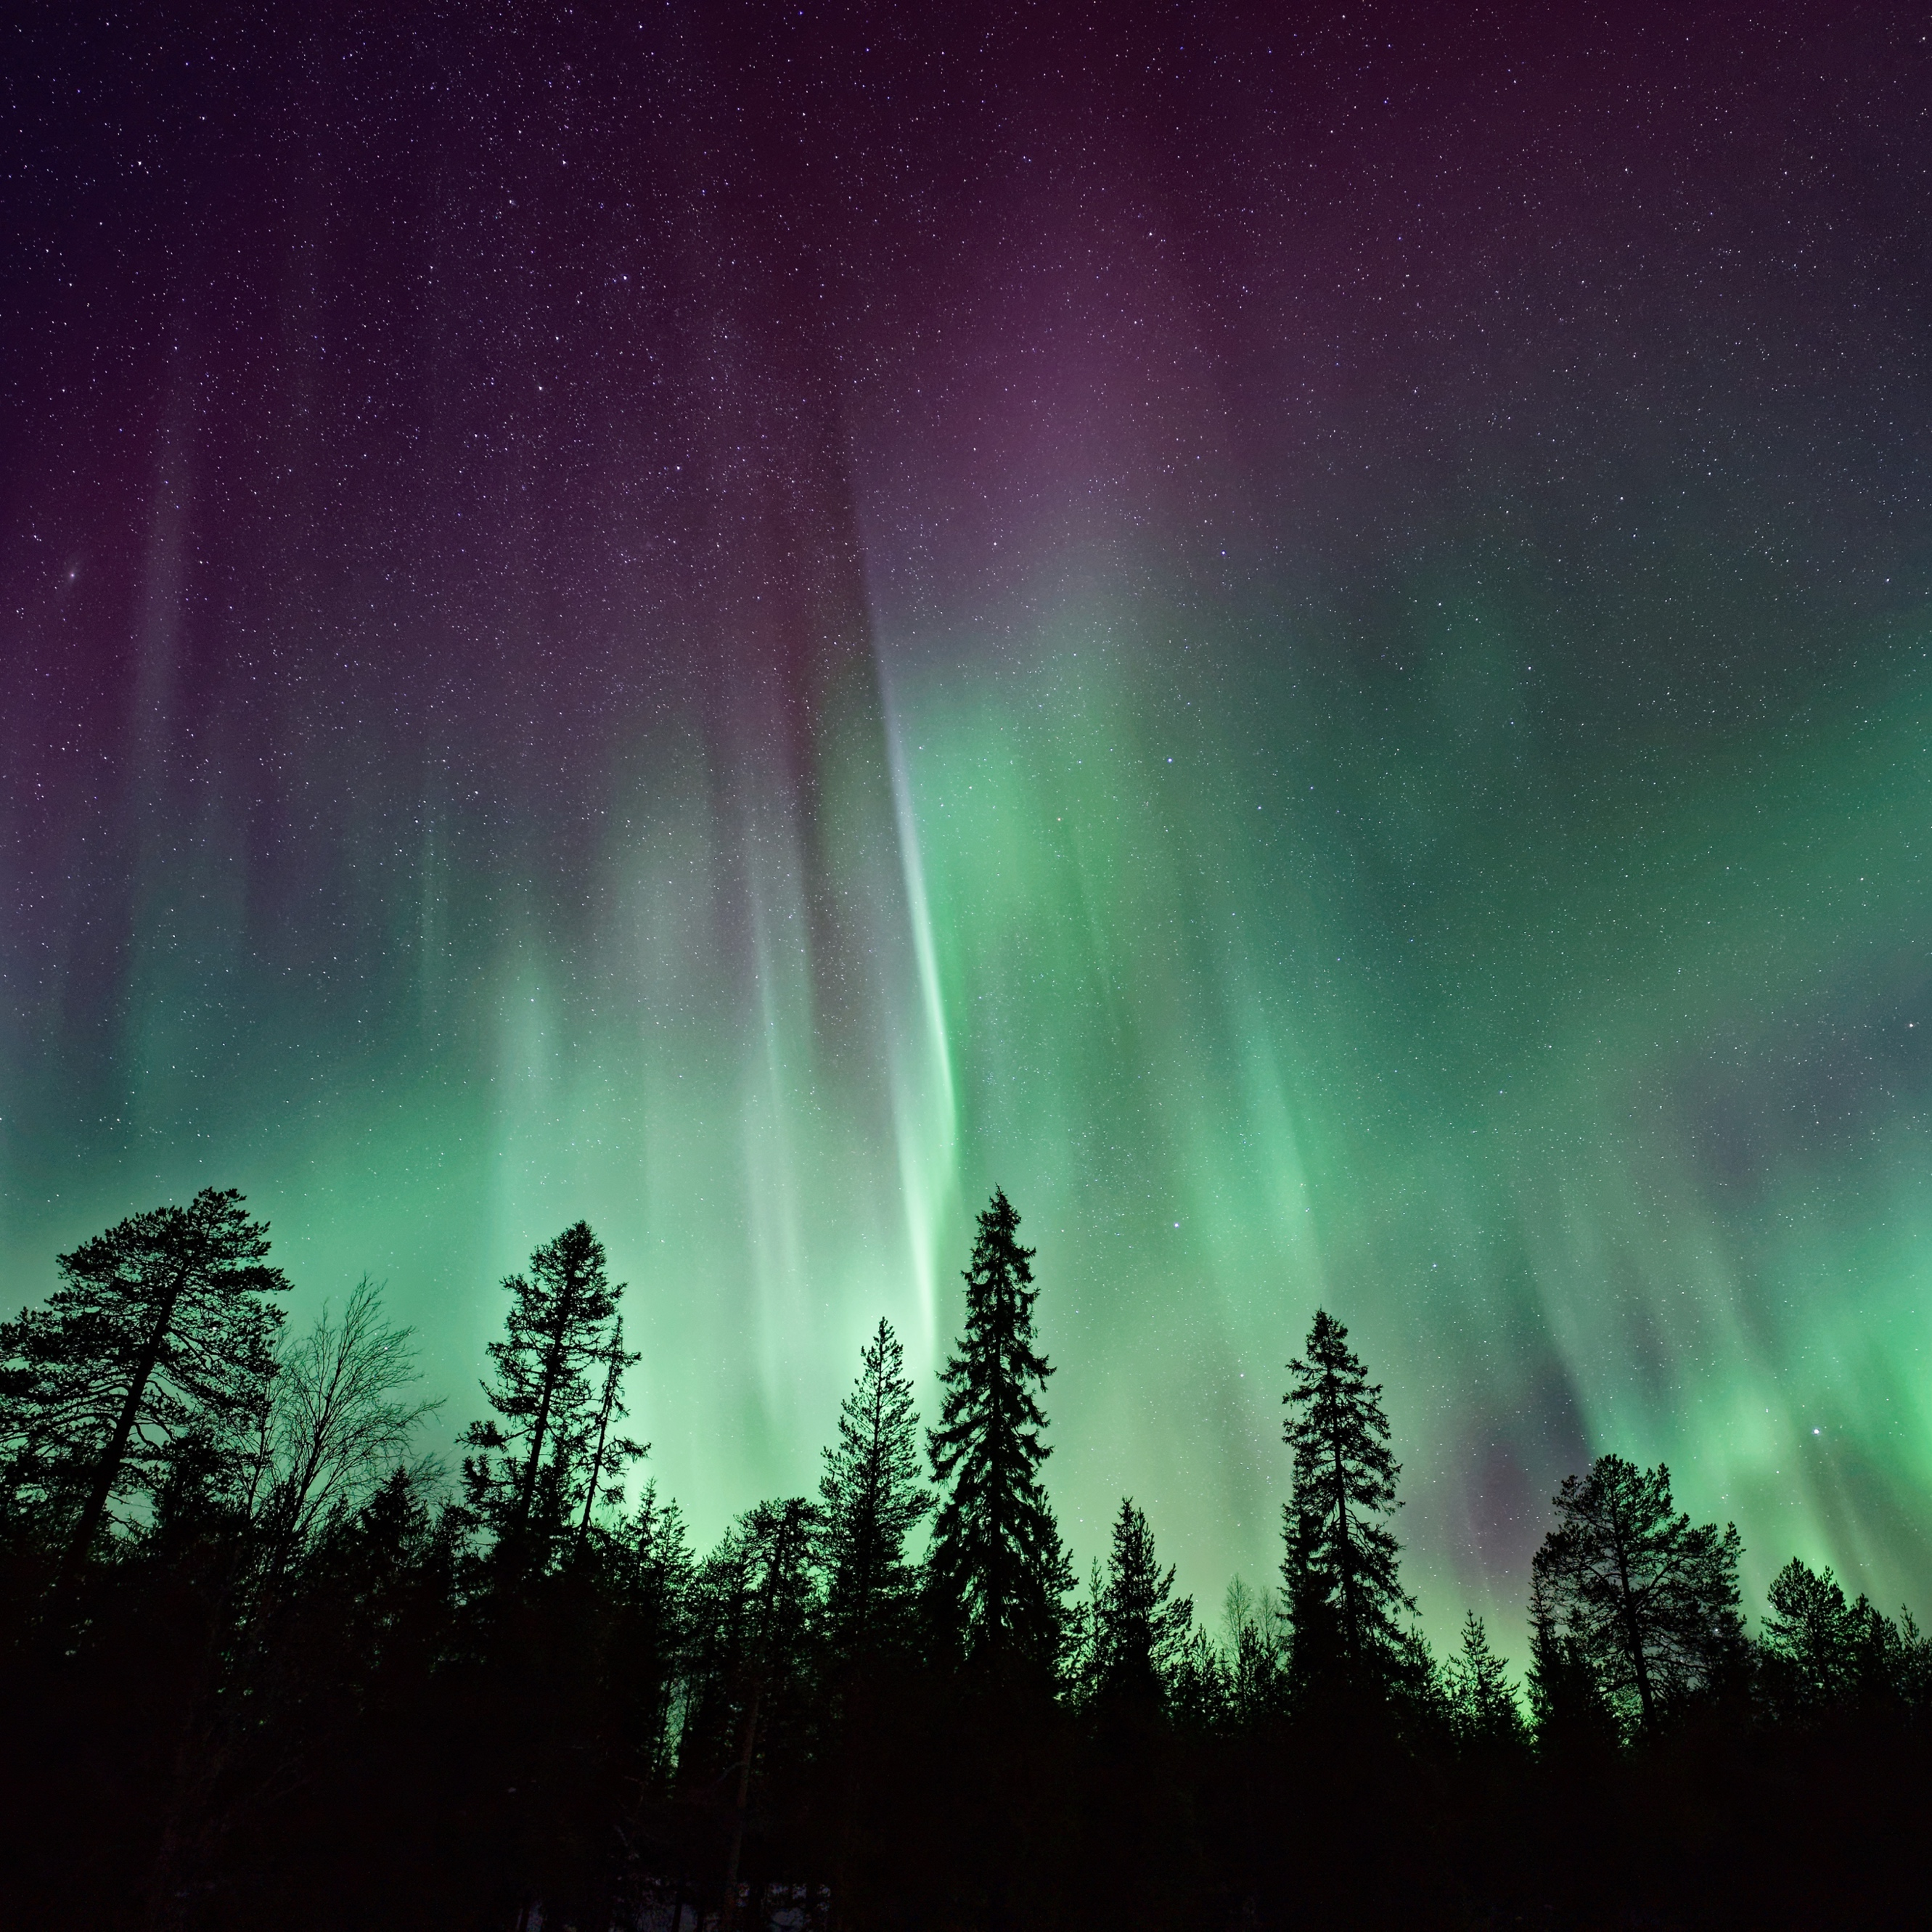 Wallpaper Weekends: Northern Lights 2 for Mac, iPad, iPhone, and Apple Watch